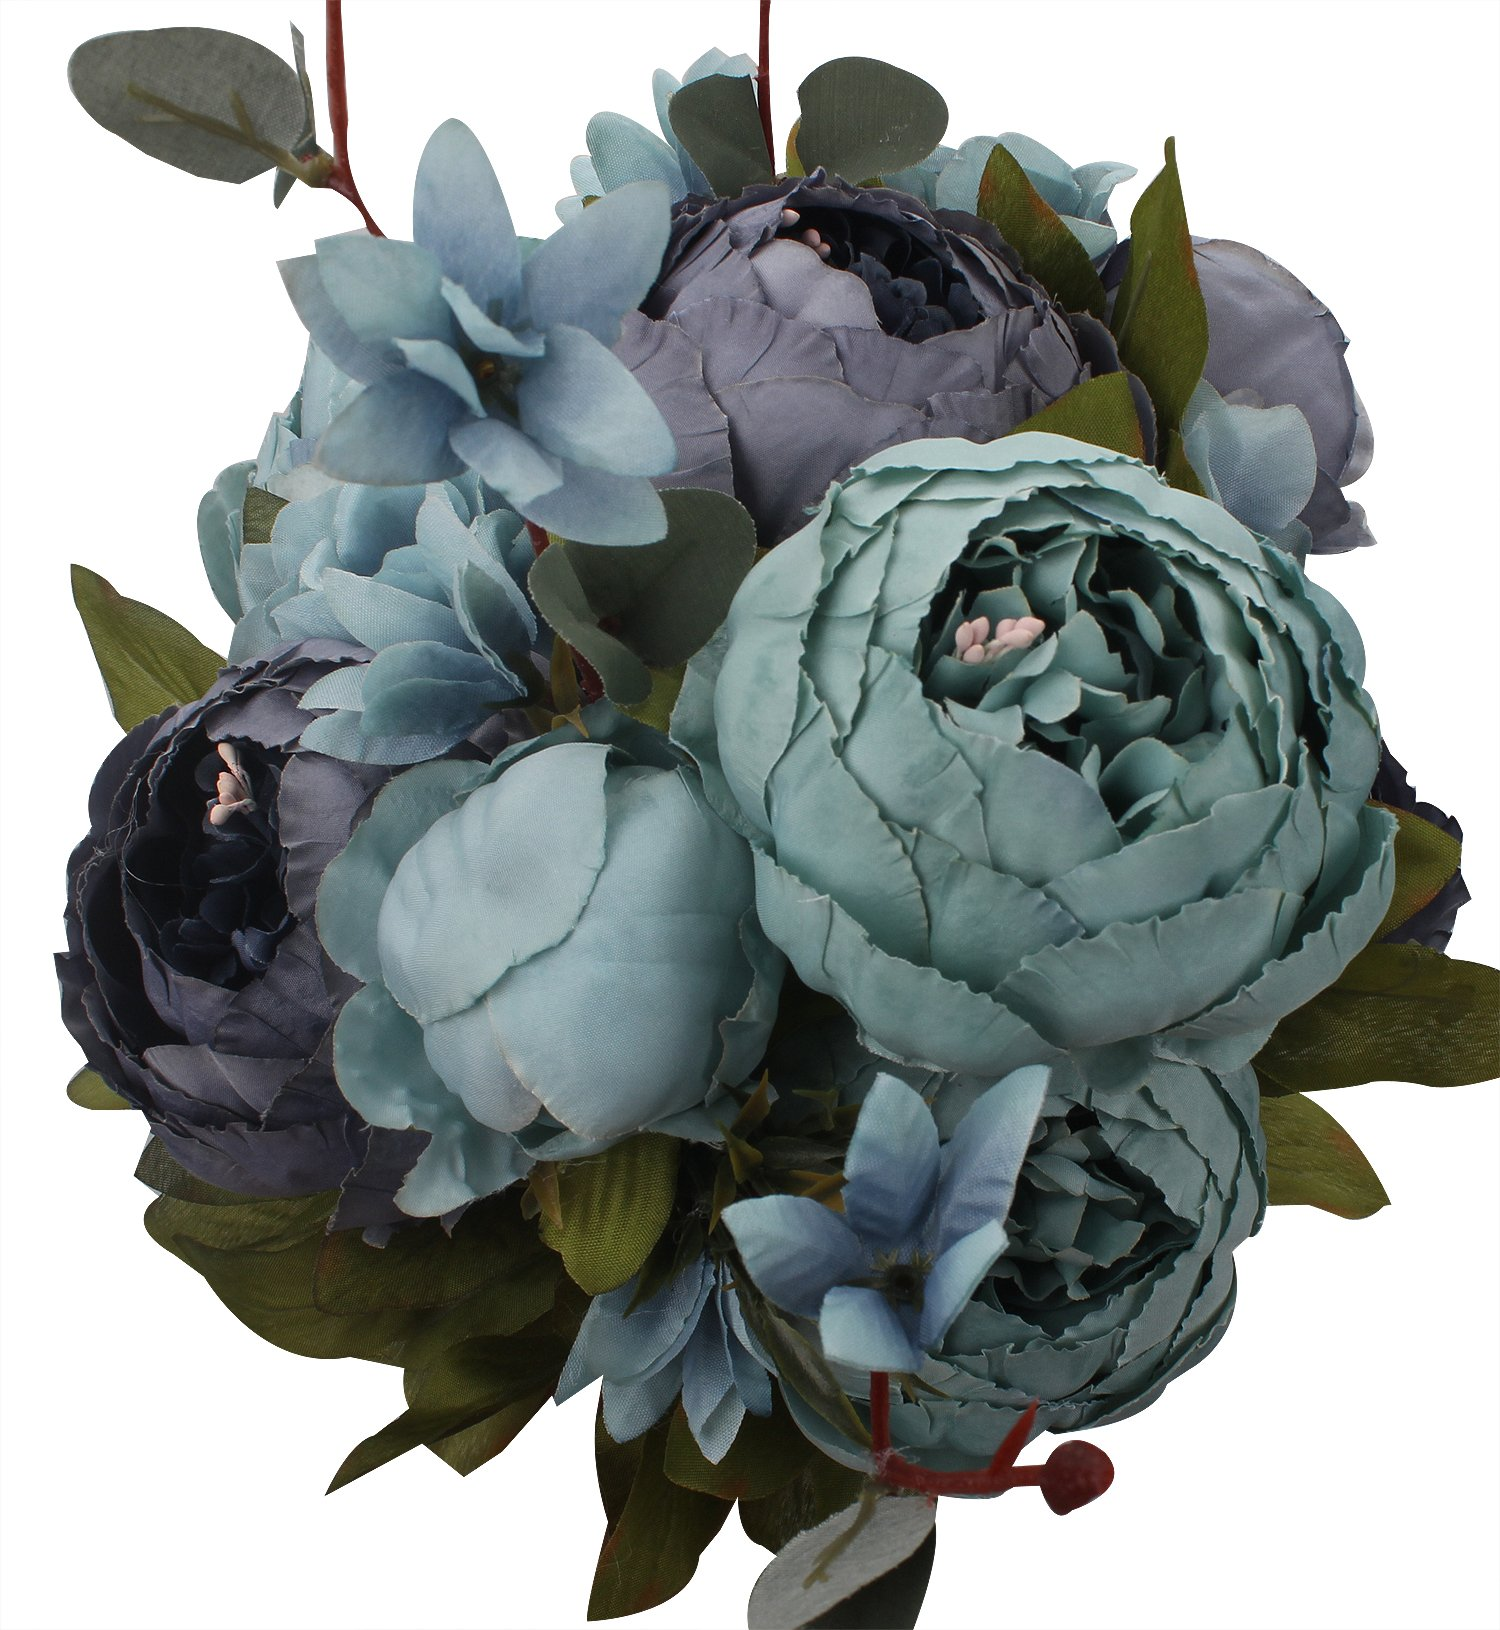 XIUER-Vintage-Peony-Flowers-Fake-Artificial-Peony-Flowers-Bouquet-Wedding-Home-Kitchen-Table-Bridal-DIY-Decoration